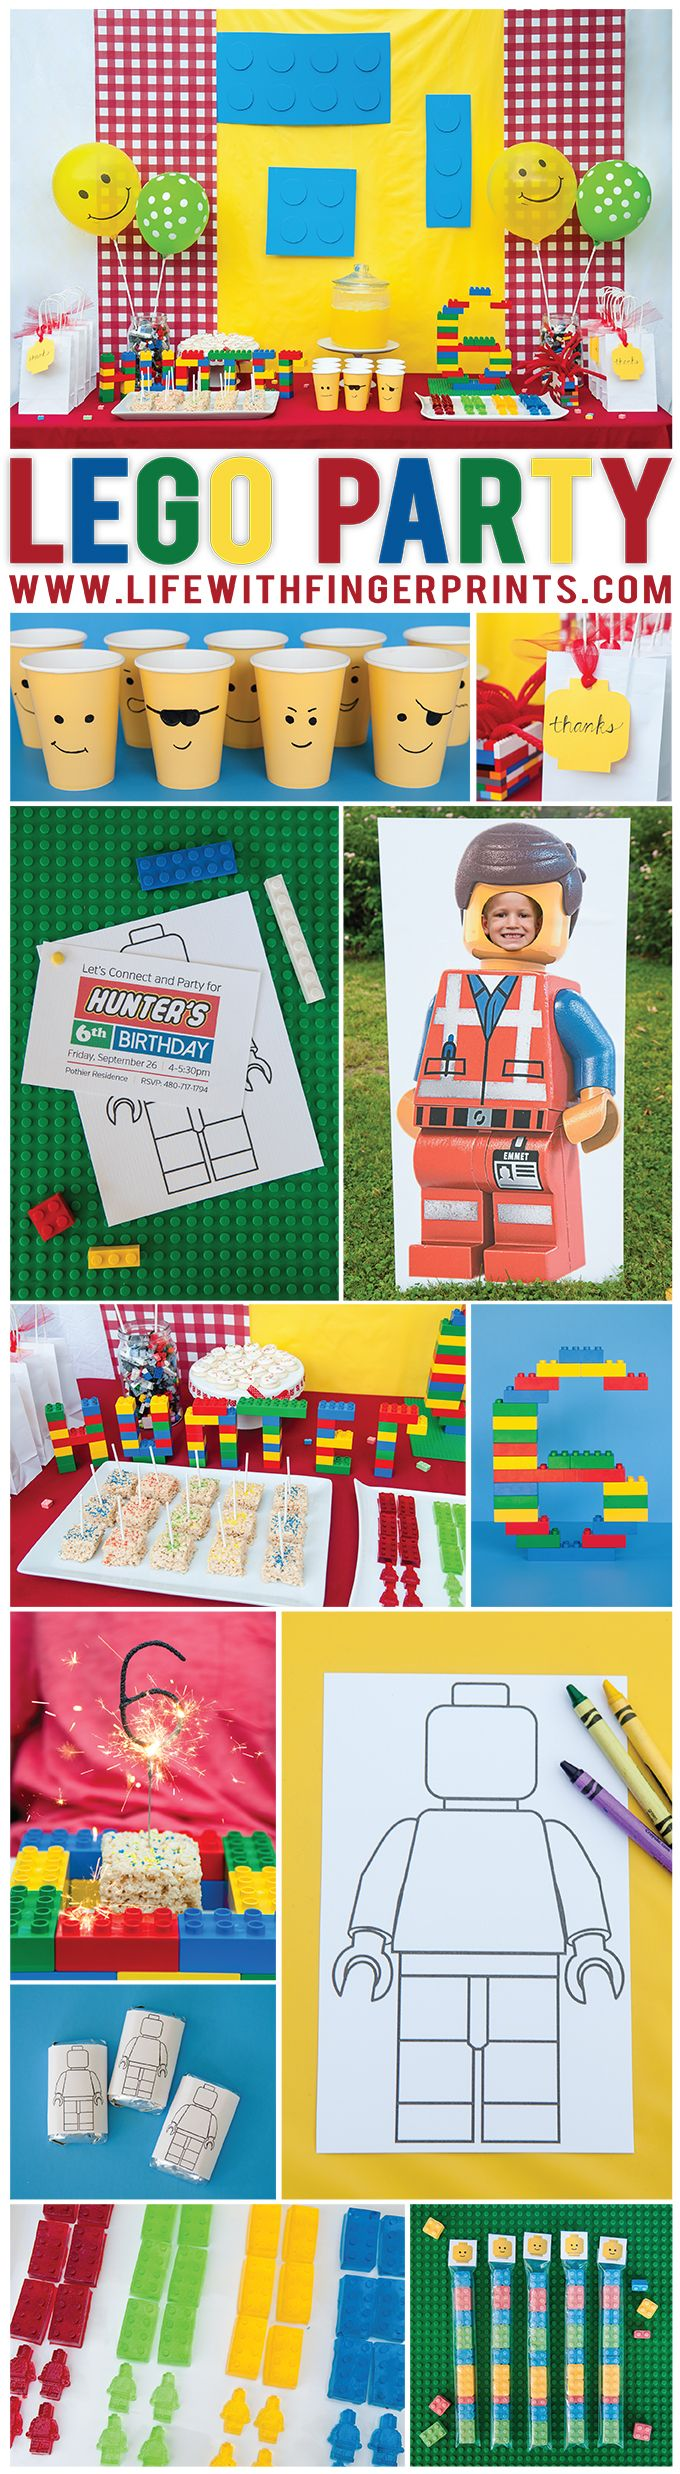 Throw your child the best party ever with these fun Lego party ideas. Everything is covered from the invites and food to games and decor